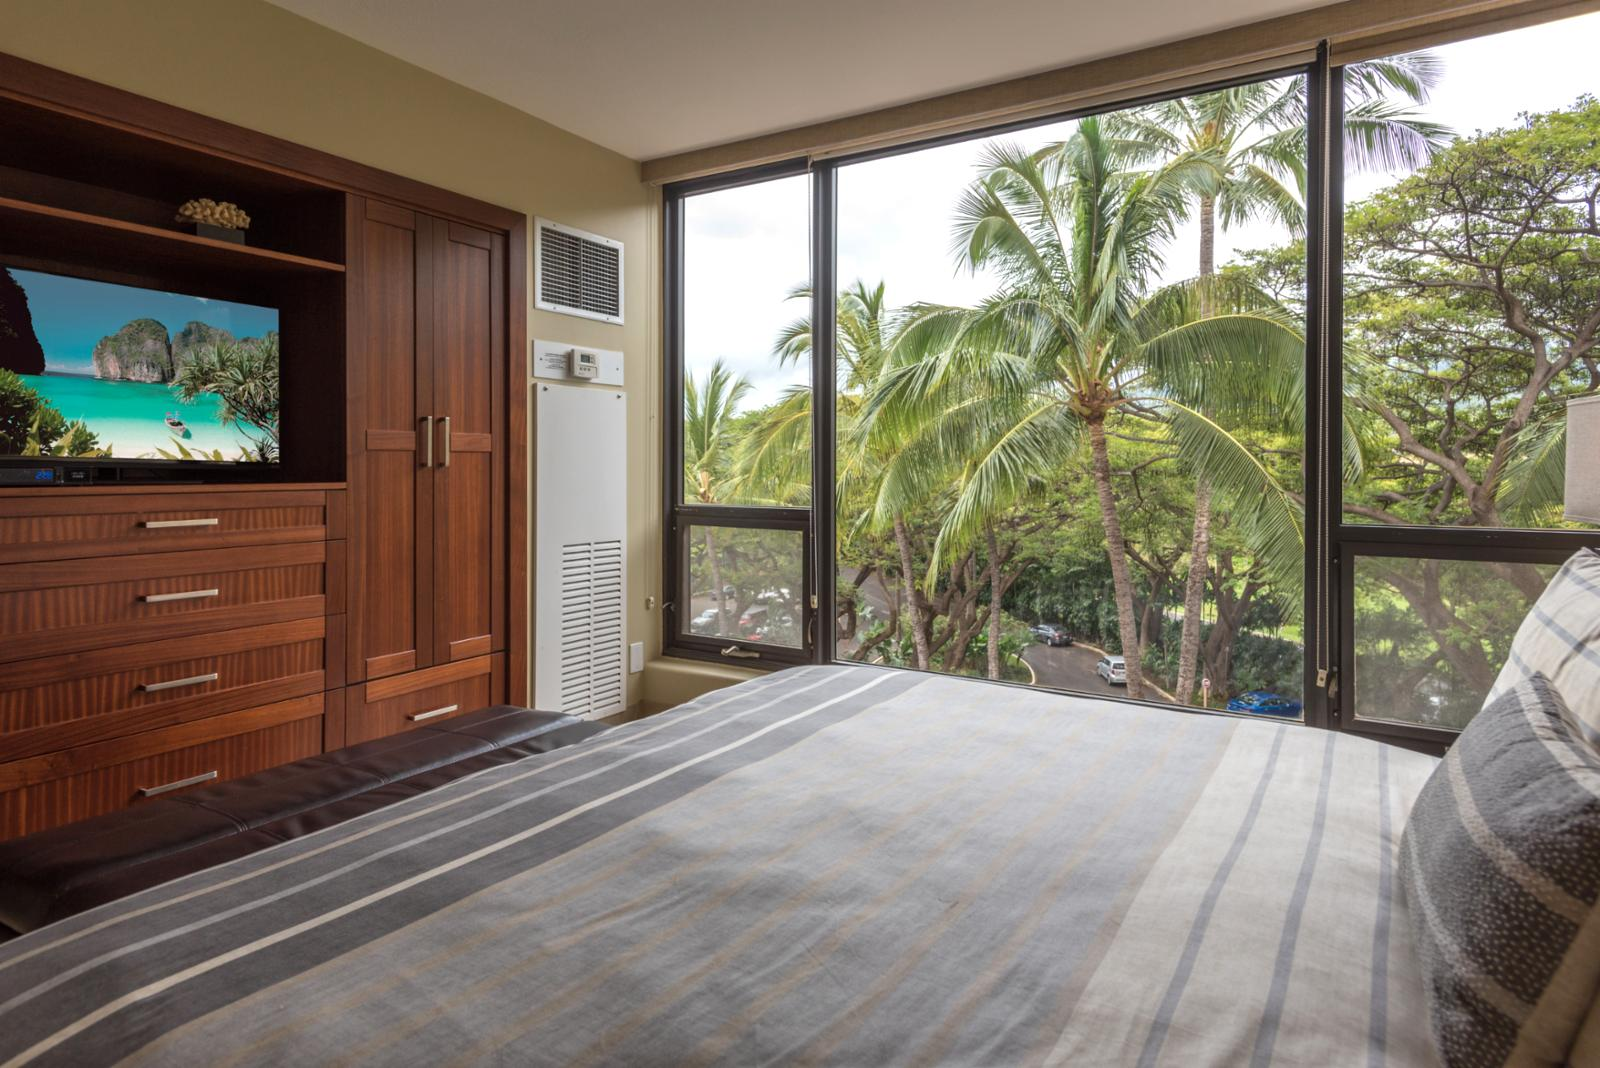 Floor to ceiling garden views from the guest bedroom